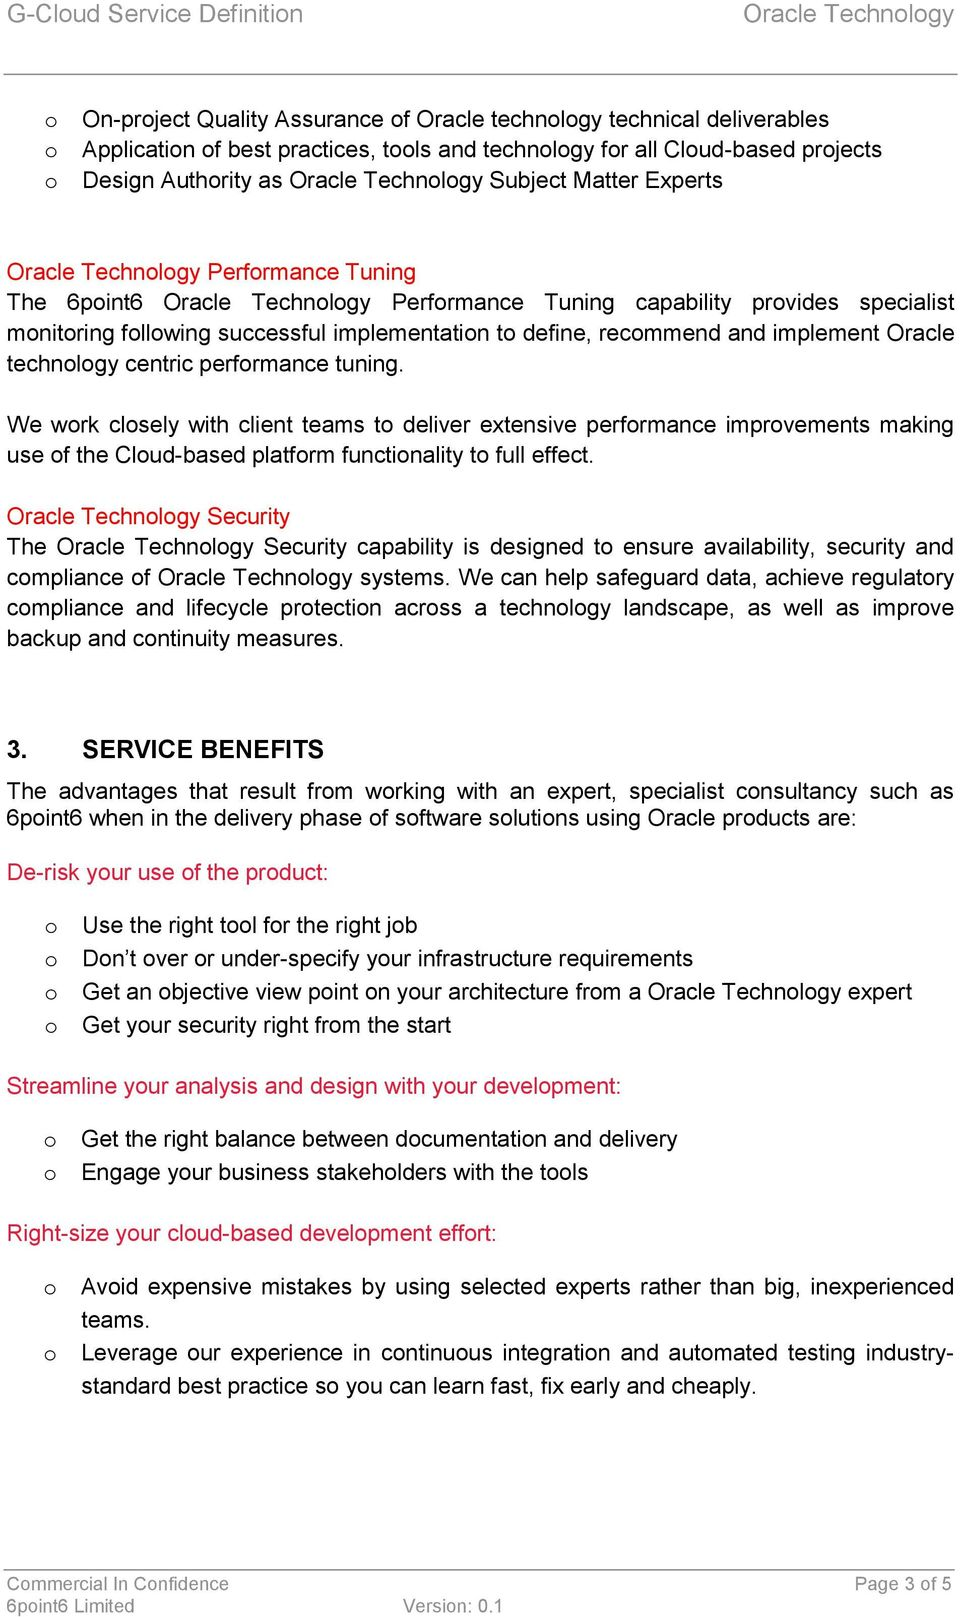 define, recmmend and implement Oracle technlgy centric perfrmance tuning.